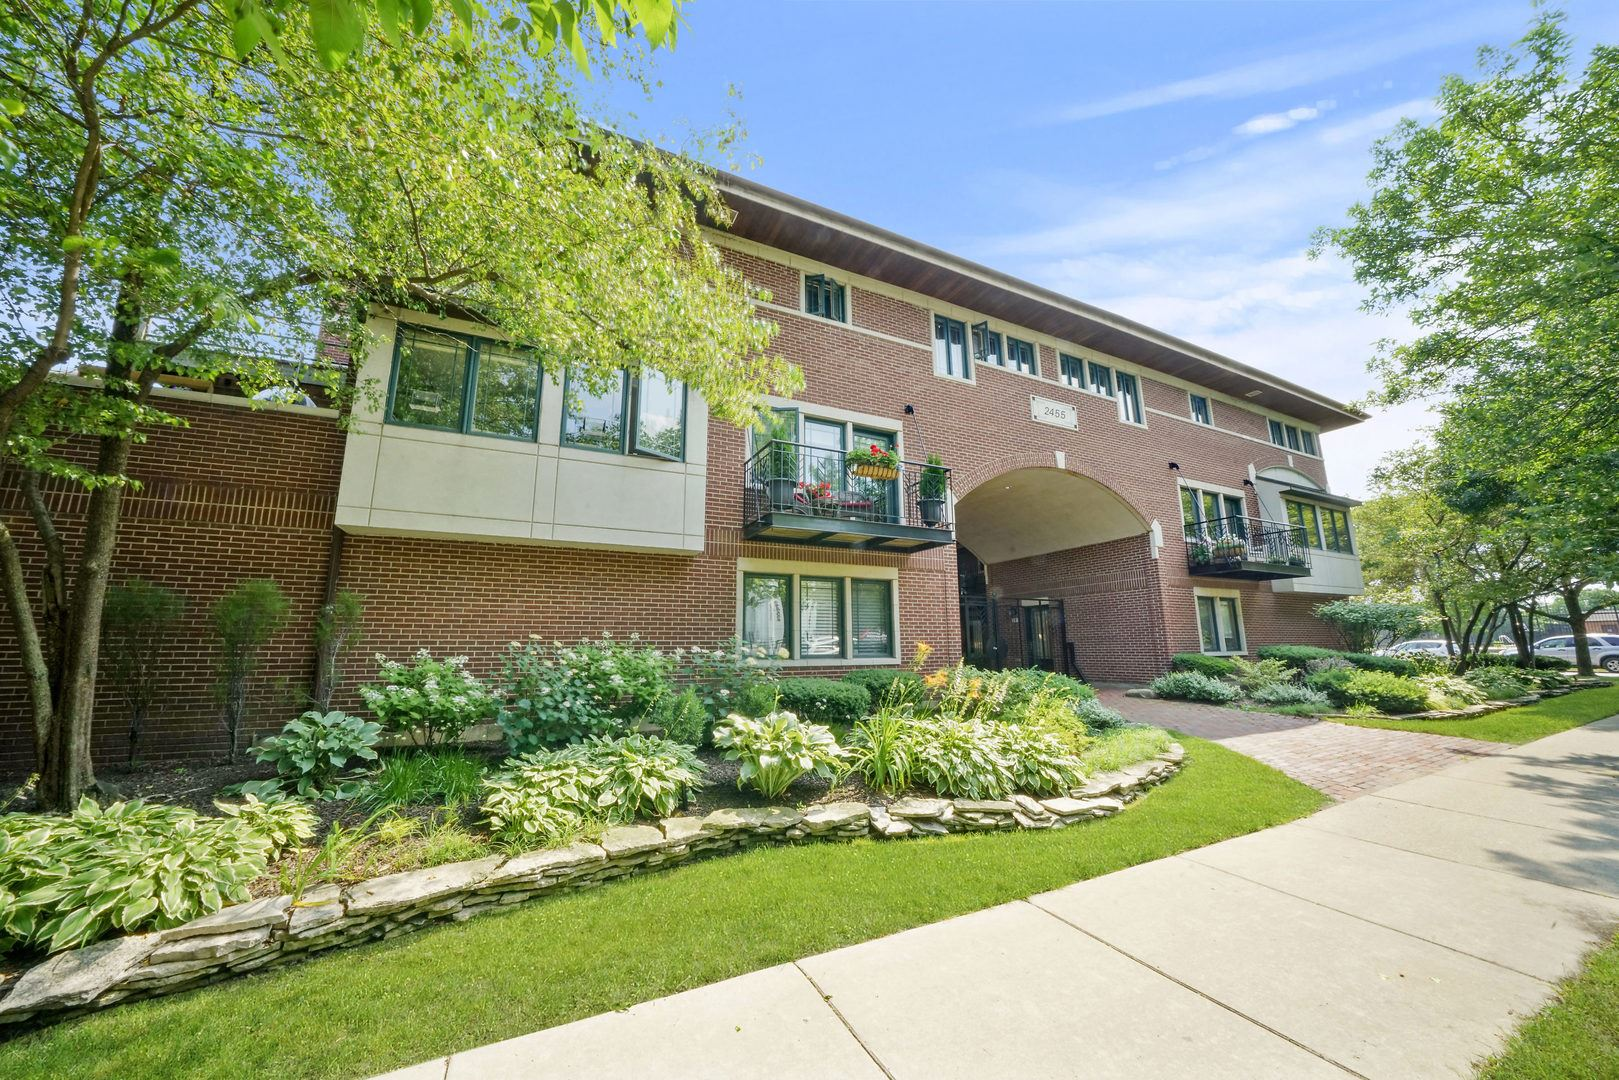 2455 W Ohio Street #3W, Chicago, IL 60612 - #: 10774642